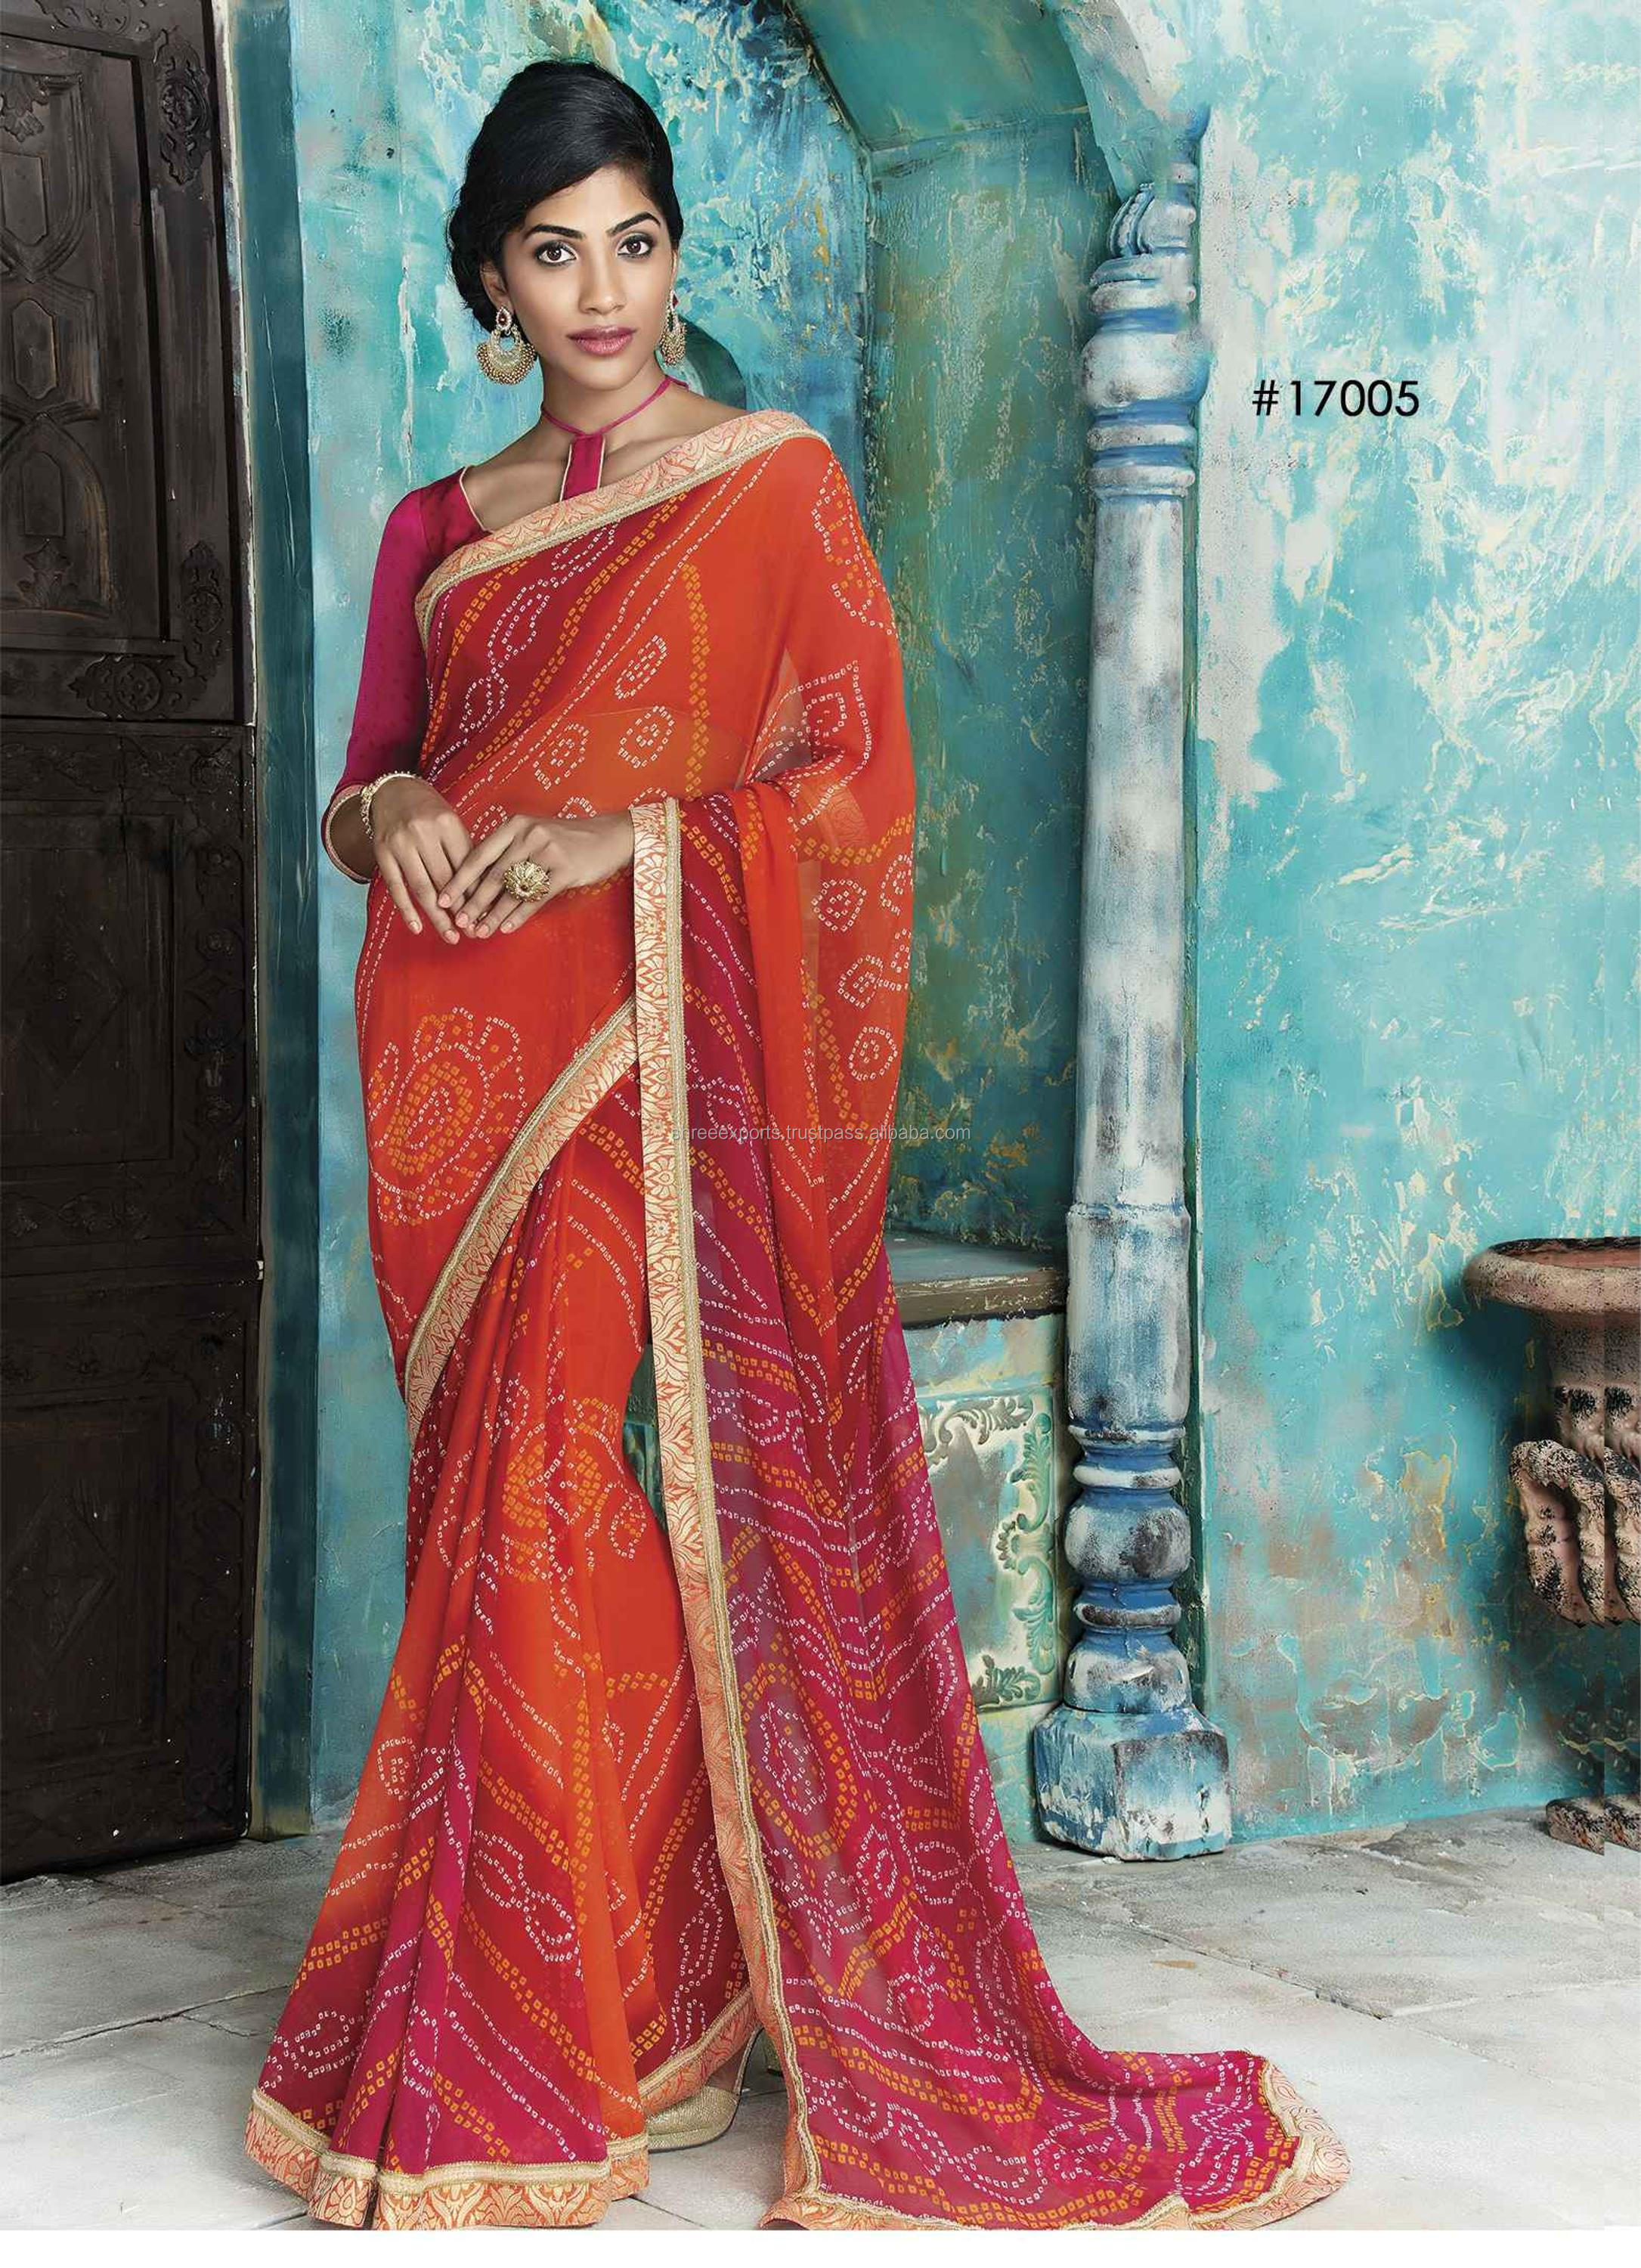 Red Georgette Designer Saree / Sarees Online Shopping / Online Shopping Of Sarees / Sarees For Online Shopping